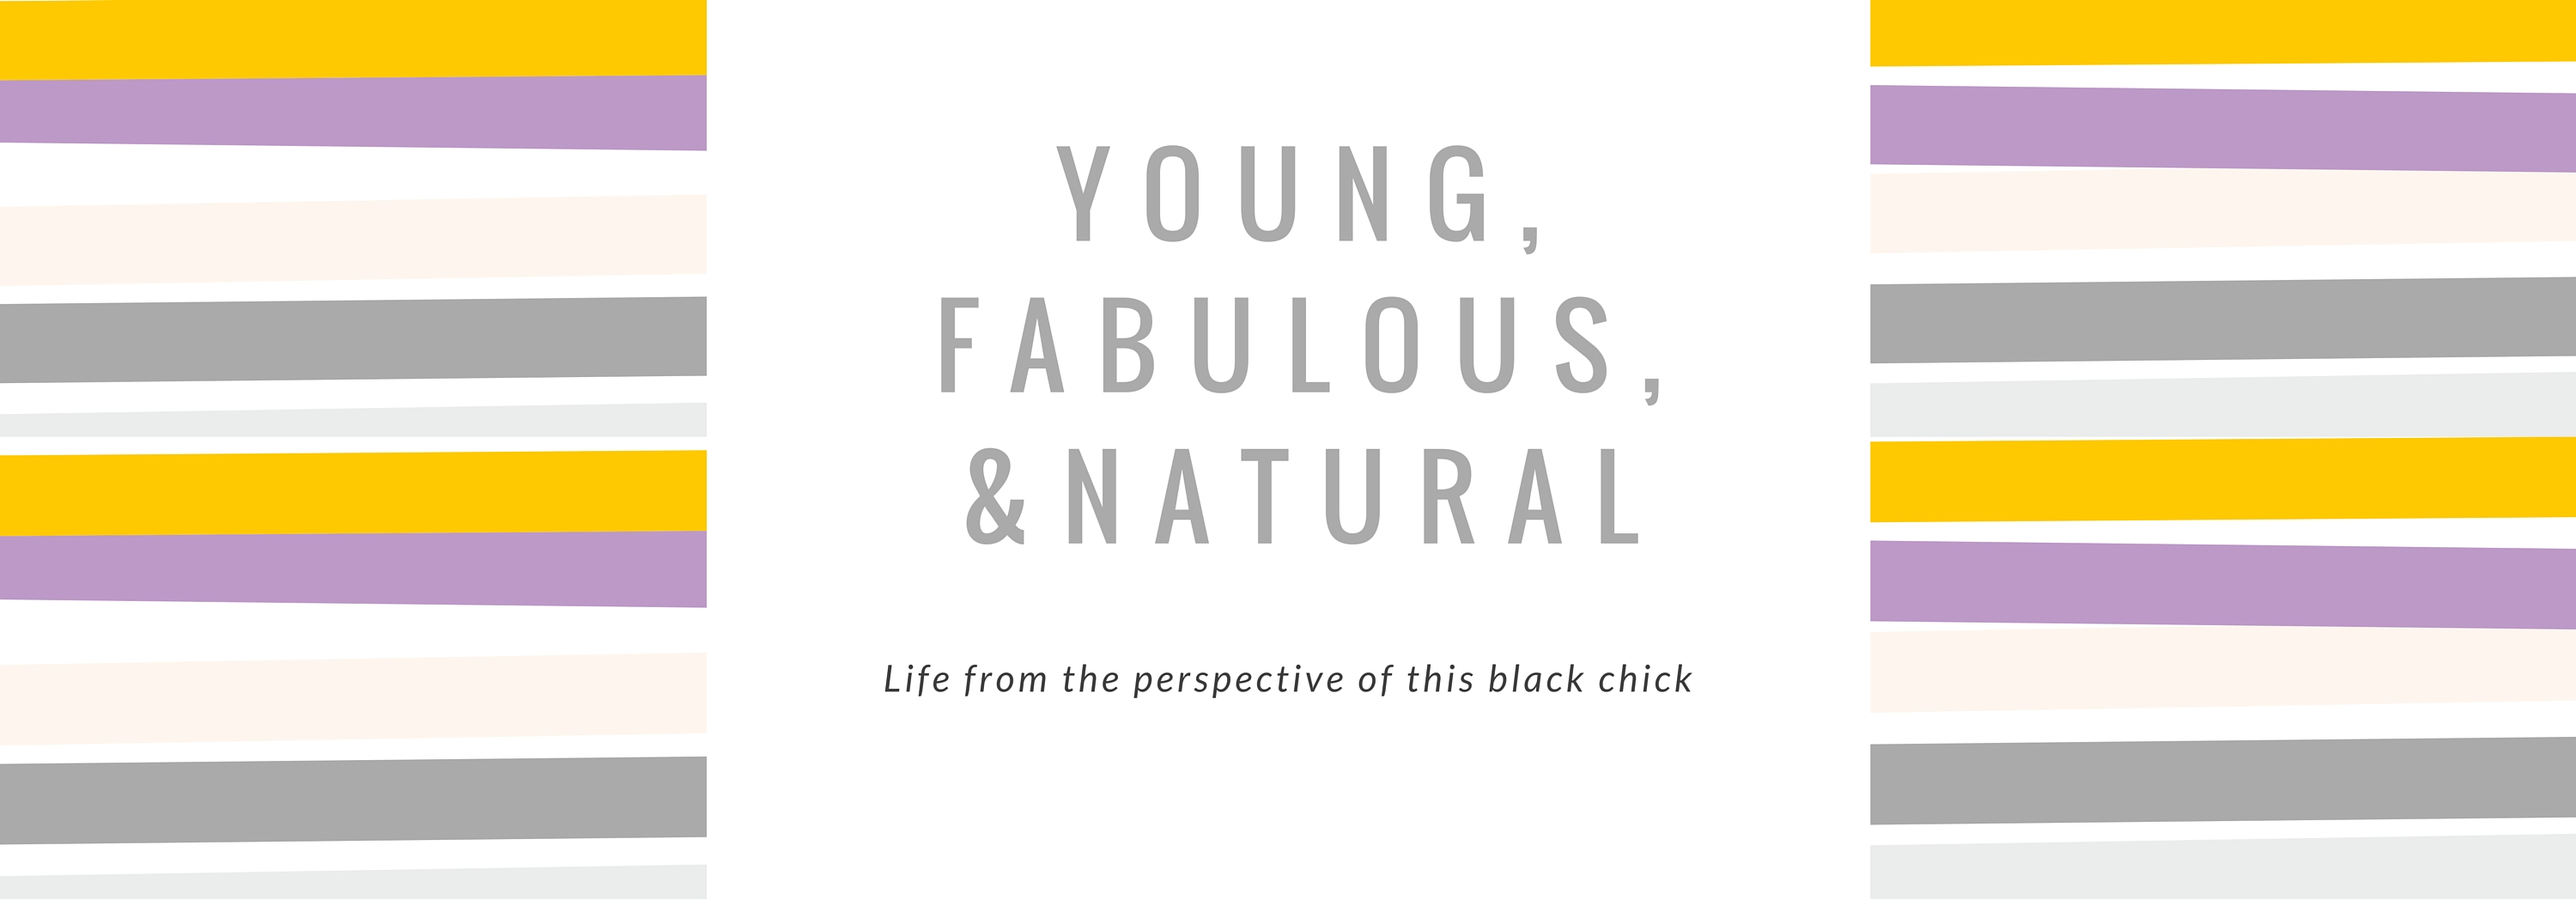 Young Fabulous & Natural